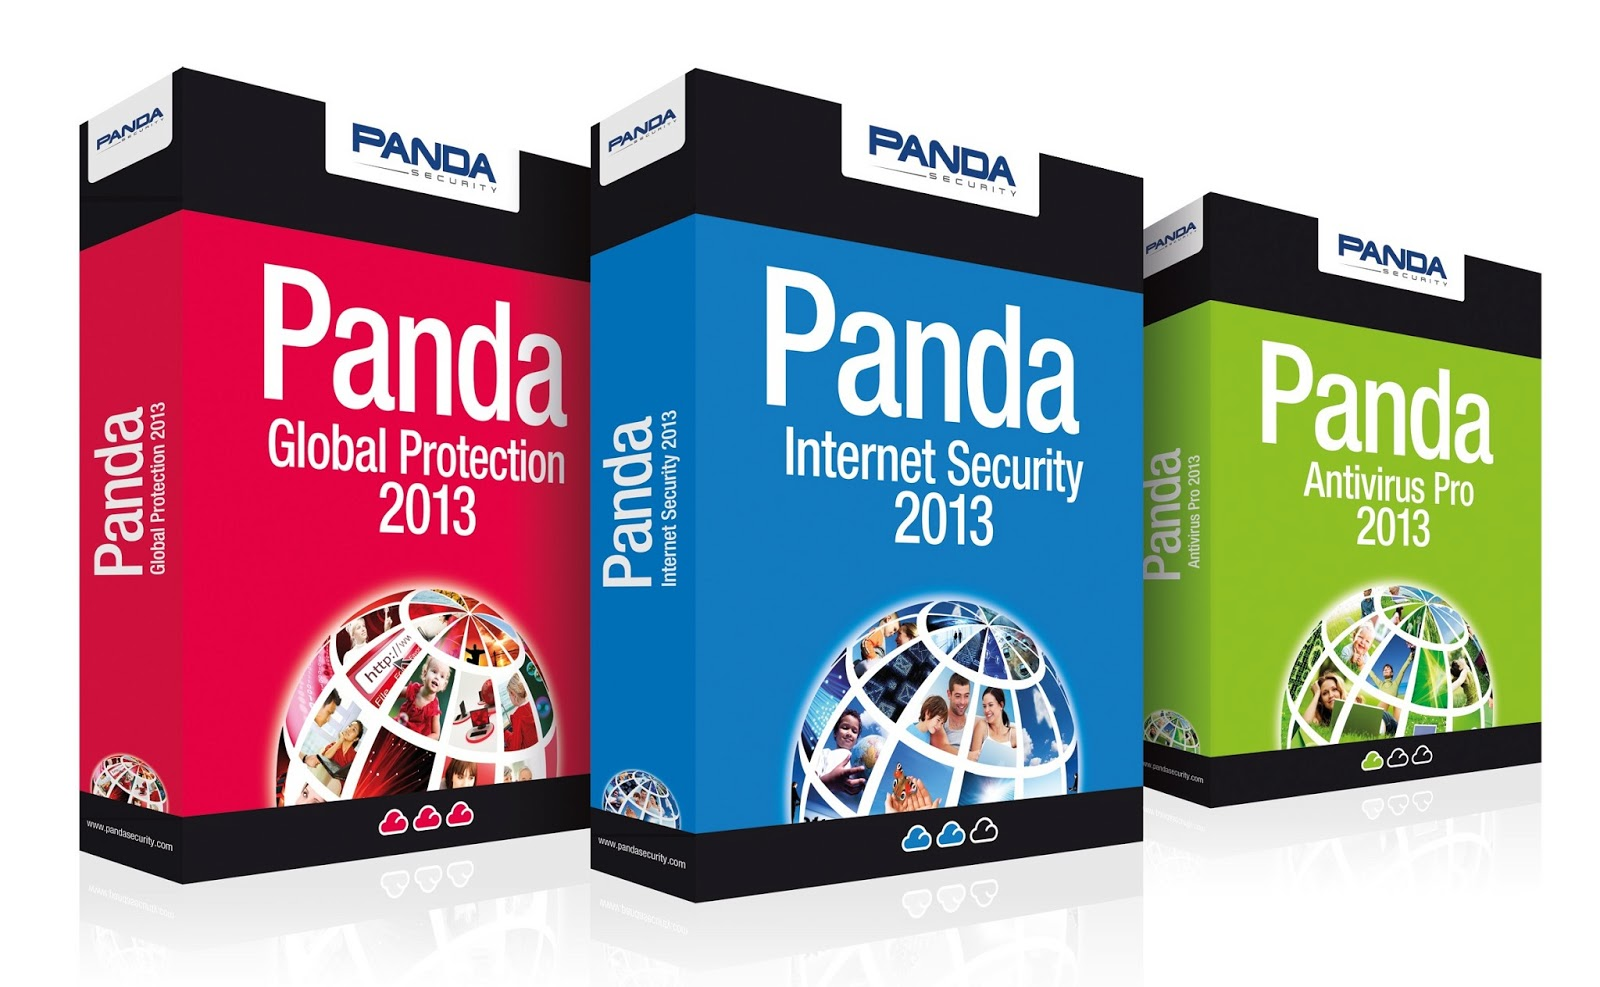 Panda Antivirus free download 2013